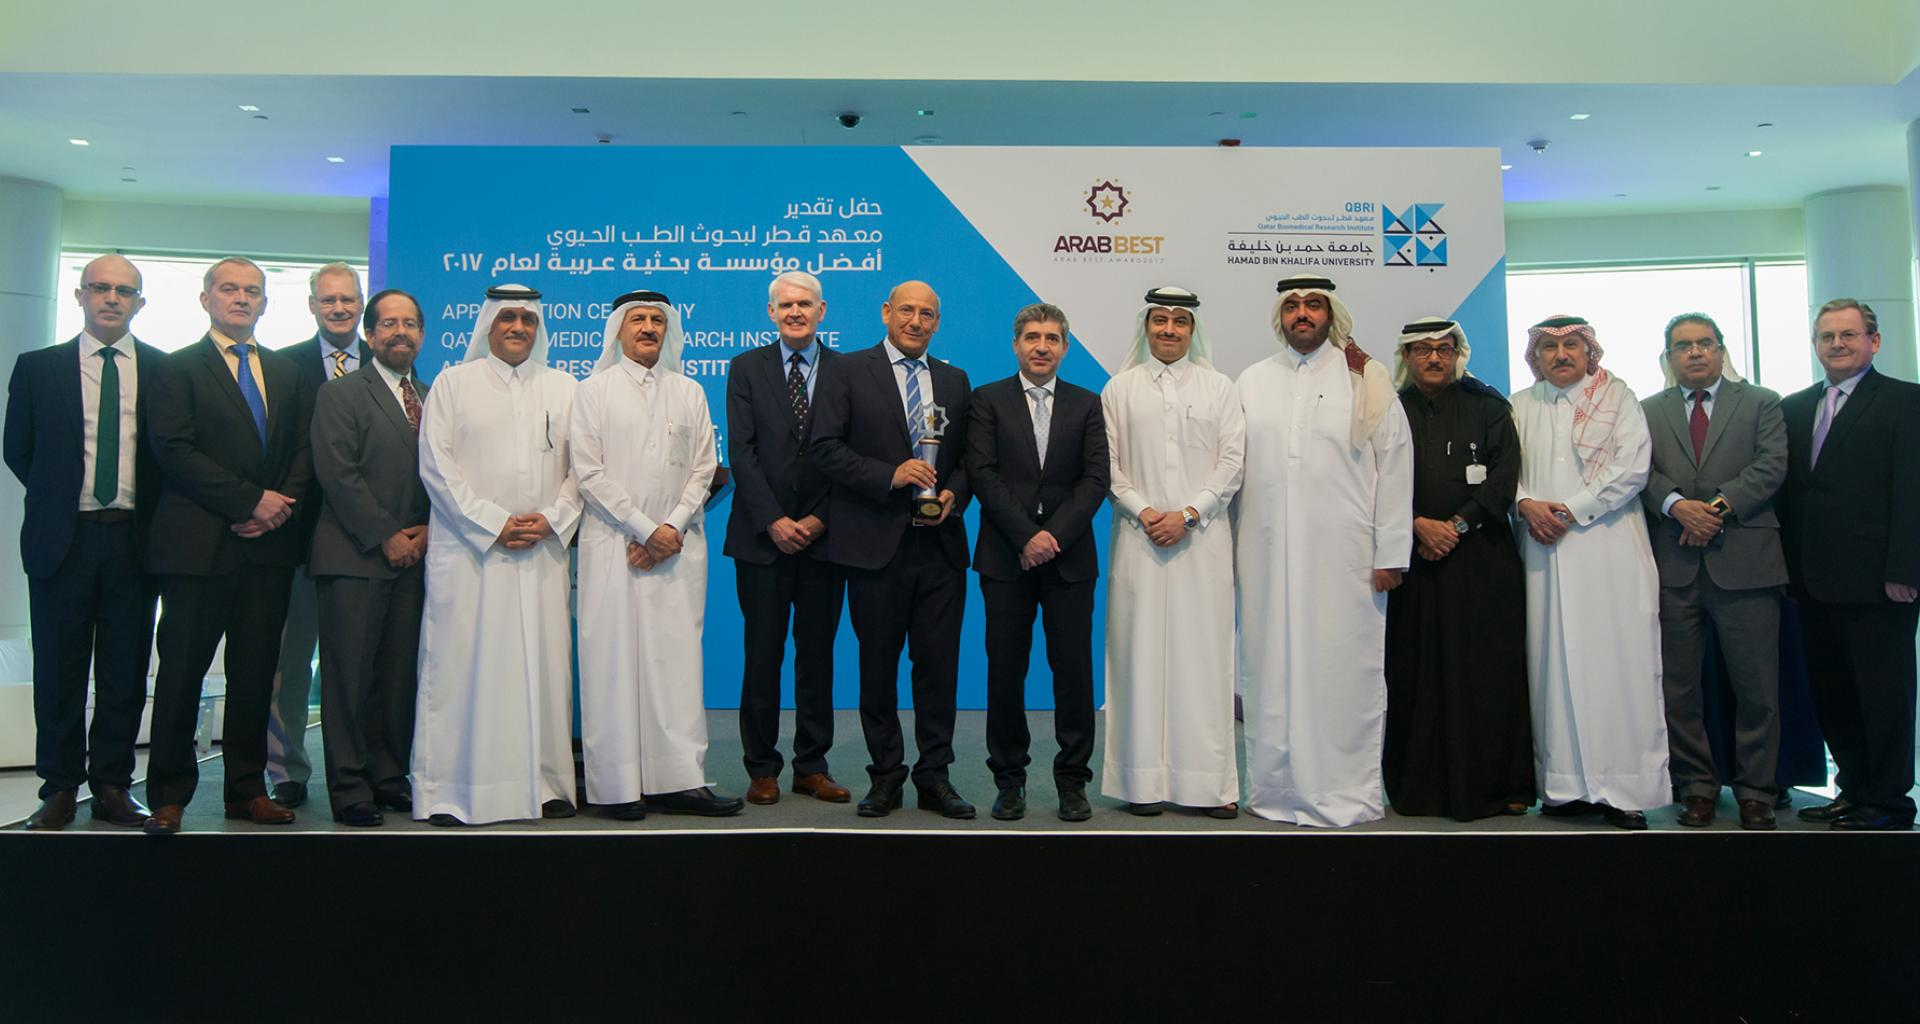 QBRI wins Best Arab Research Foundation award